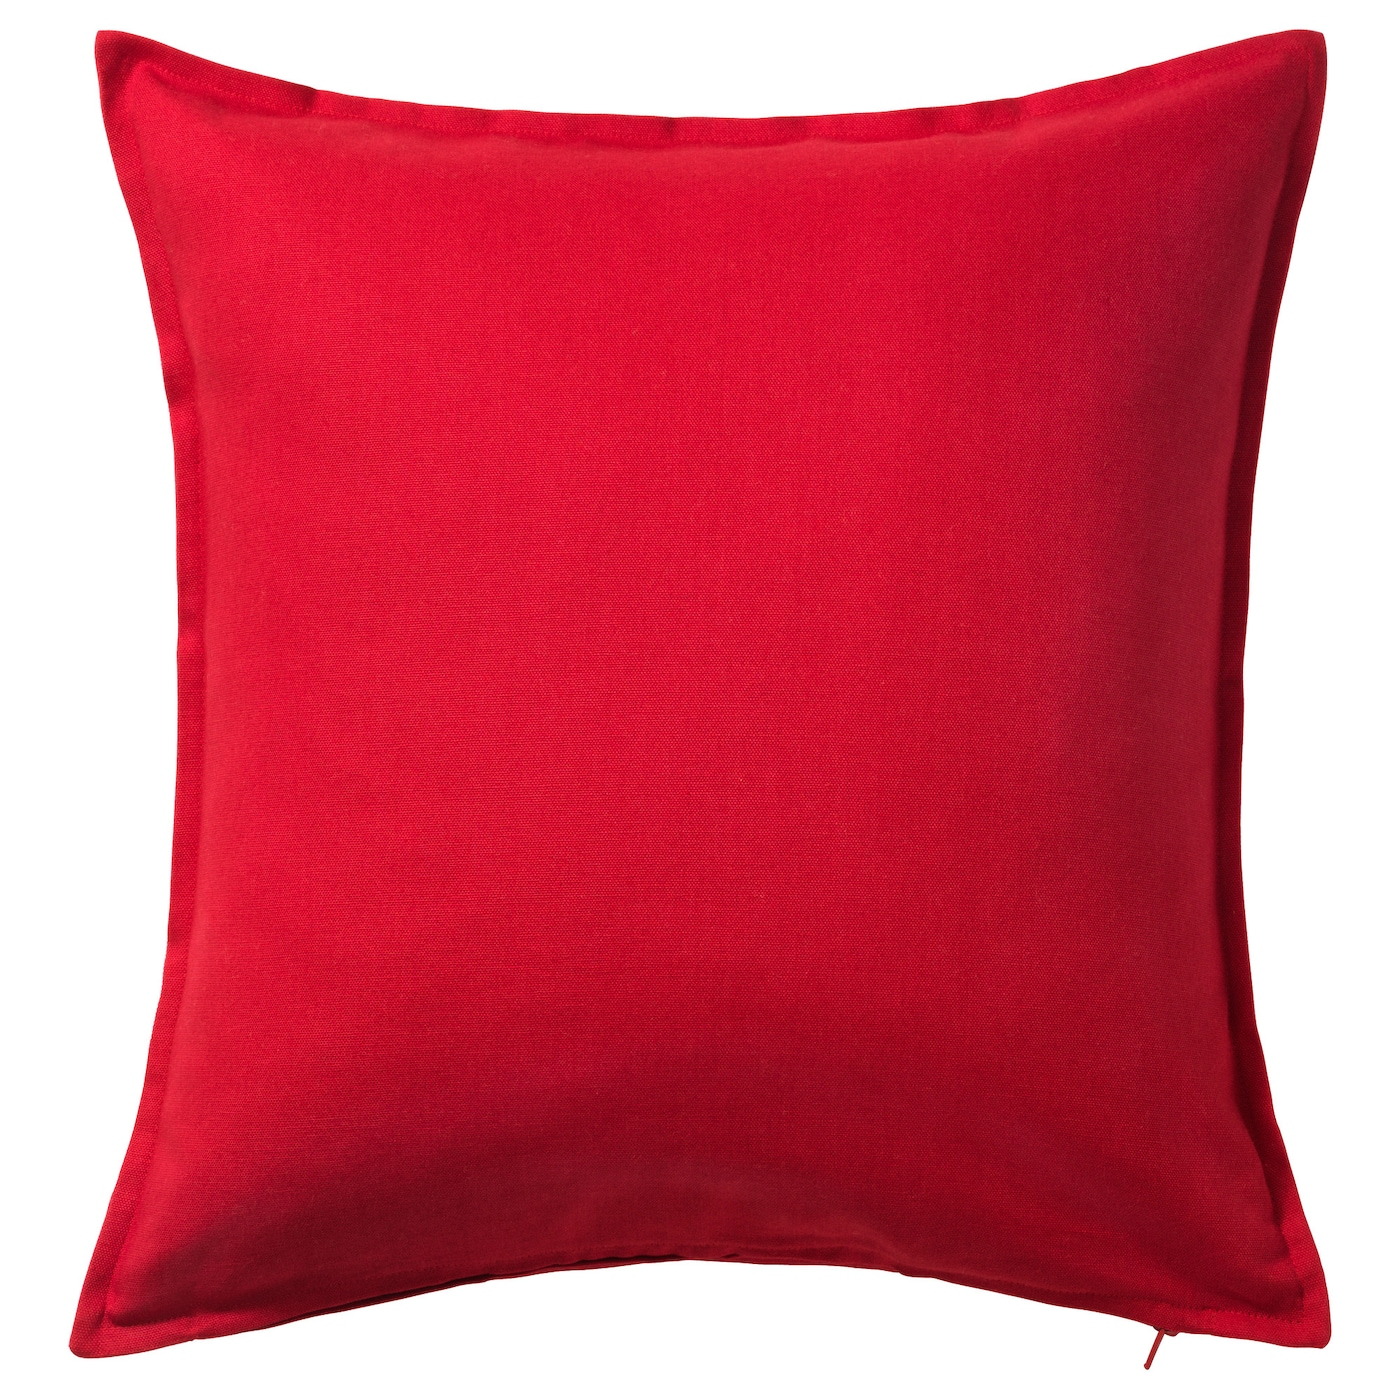 gurli cushion cover red 50x50 cm ikea. Black Bedroom Furniture Sets. Home Design Ideas